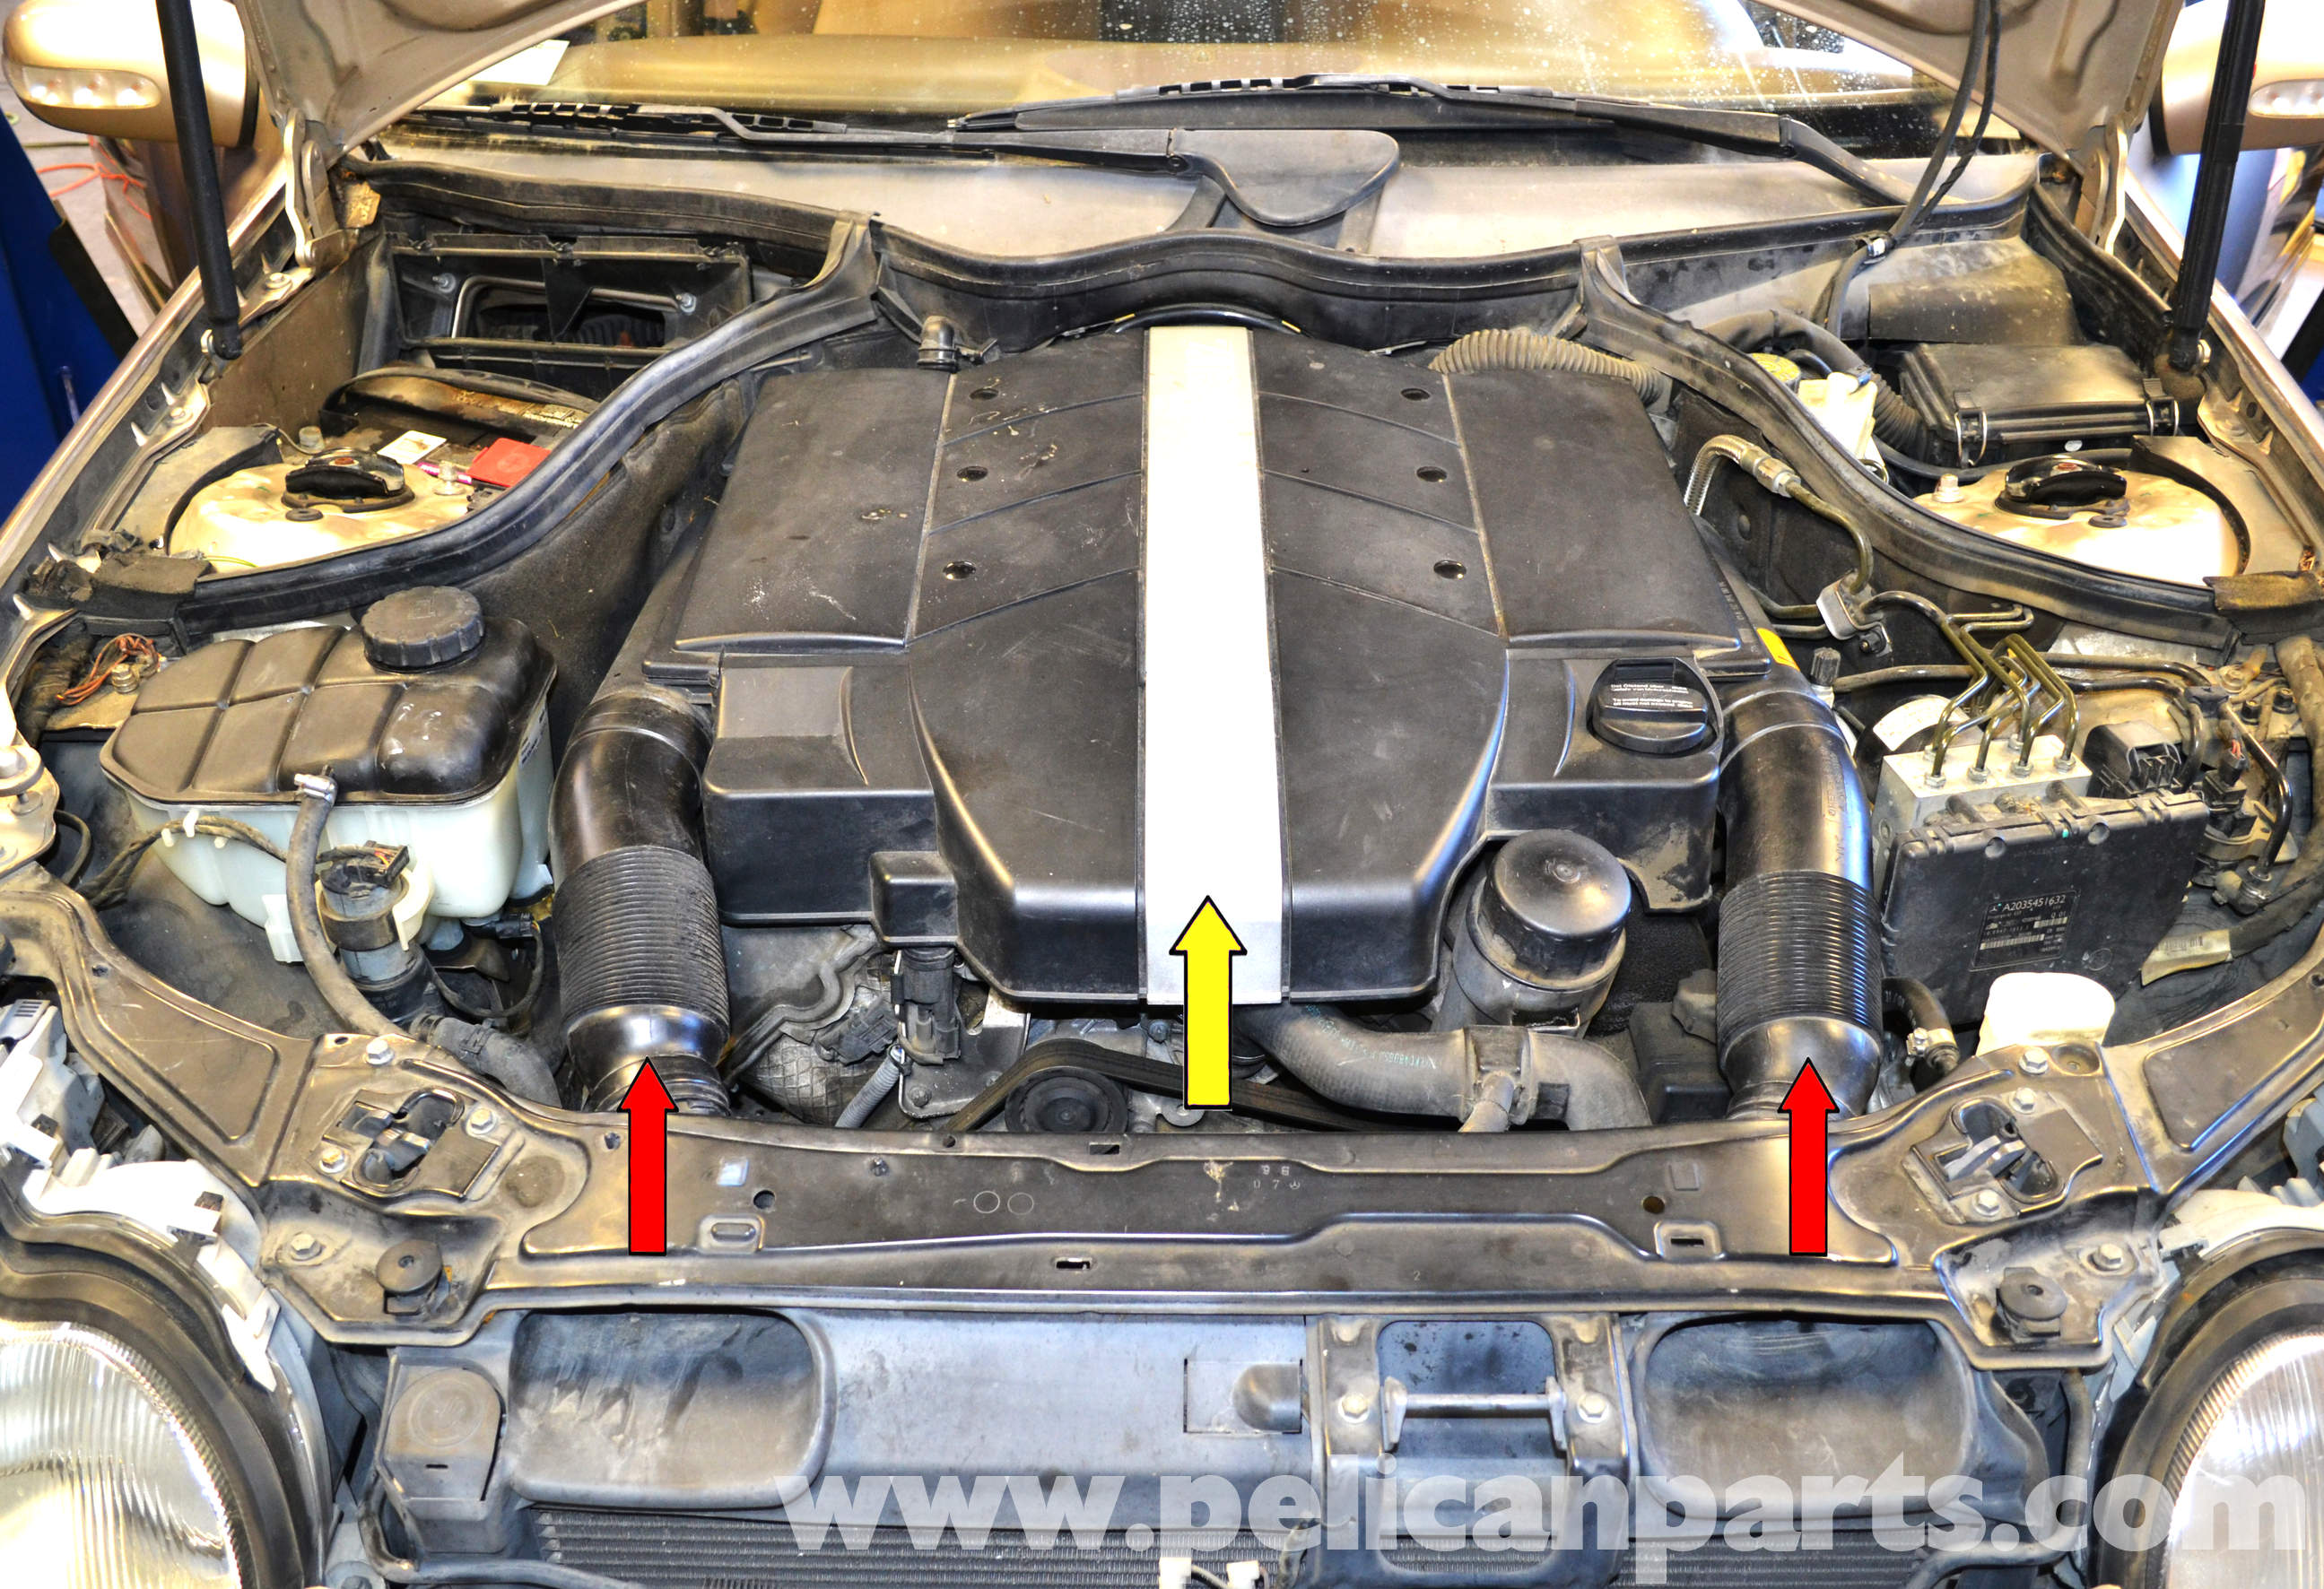 Mercedes benz w203 timing chain tensioner replacement for Mercedes benz c230 engine